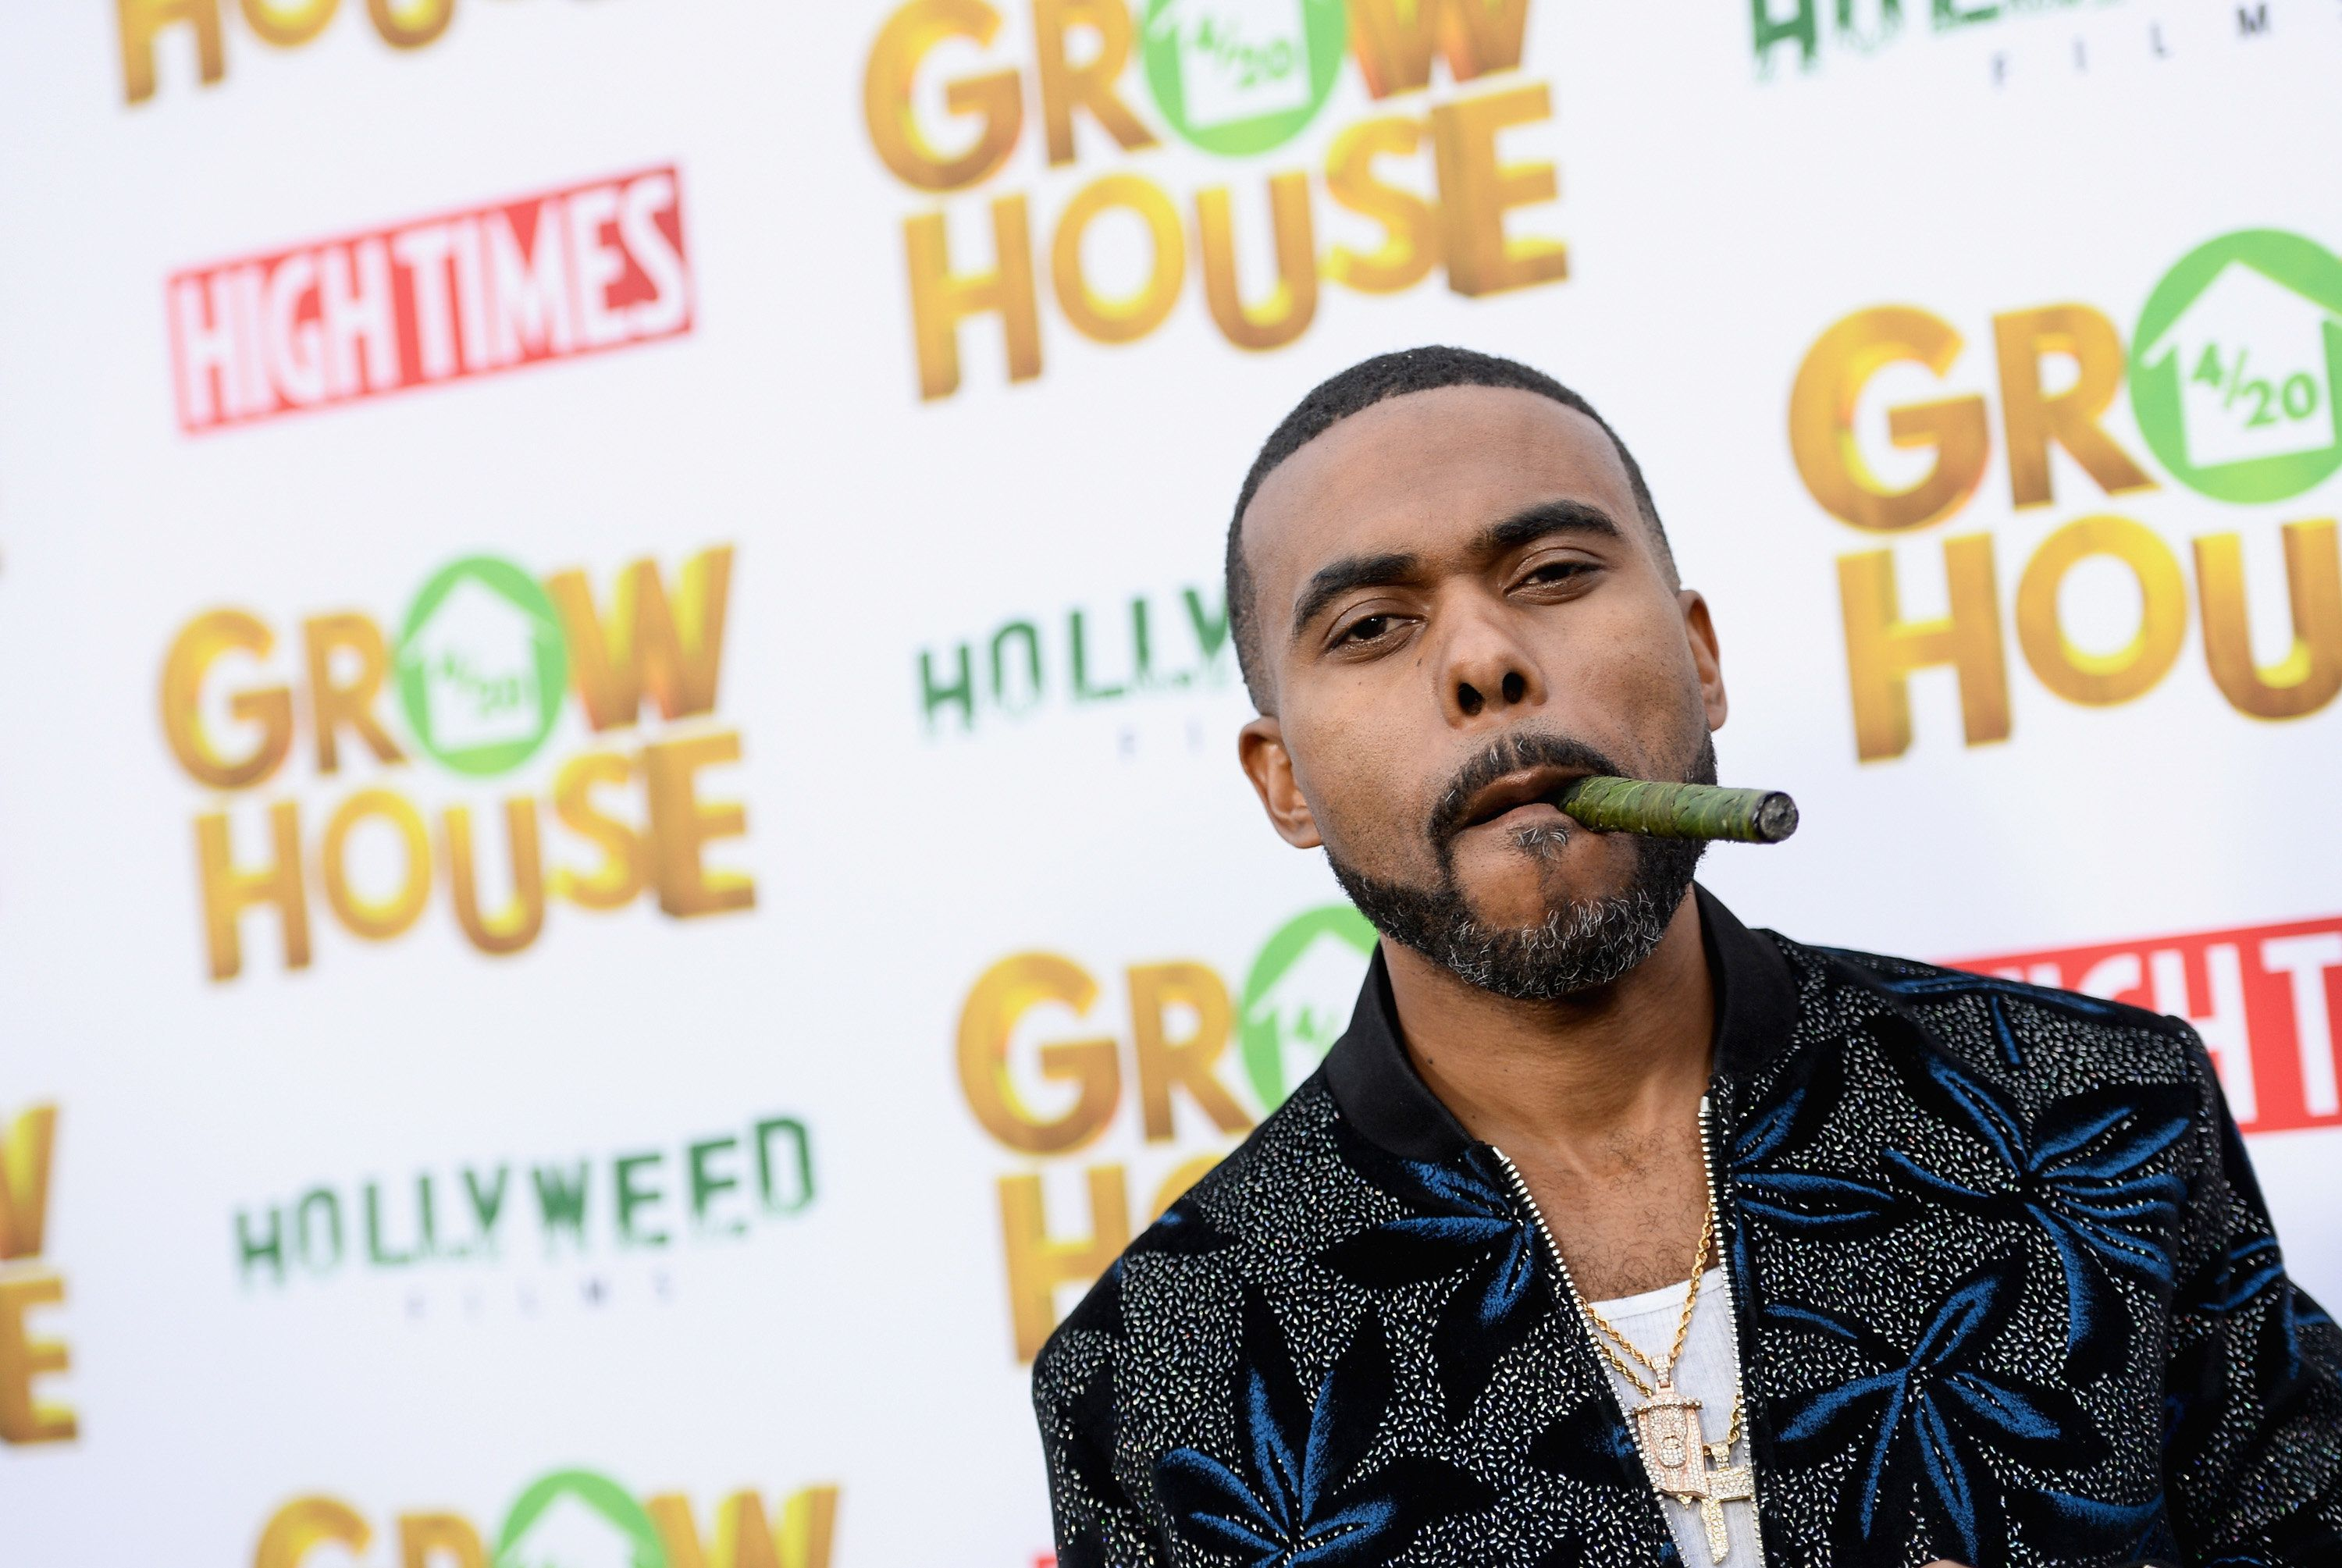 LOS ANGELES, CA - APRIL 17:  Comedian/actor Lil Duval arrives at the premiere of 'Grow House' at Regency Bruin Theatre on April 17, 2017 in Los Angeles, California.  (Photo by Tara Ziemba/Getty Images)